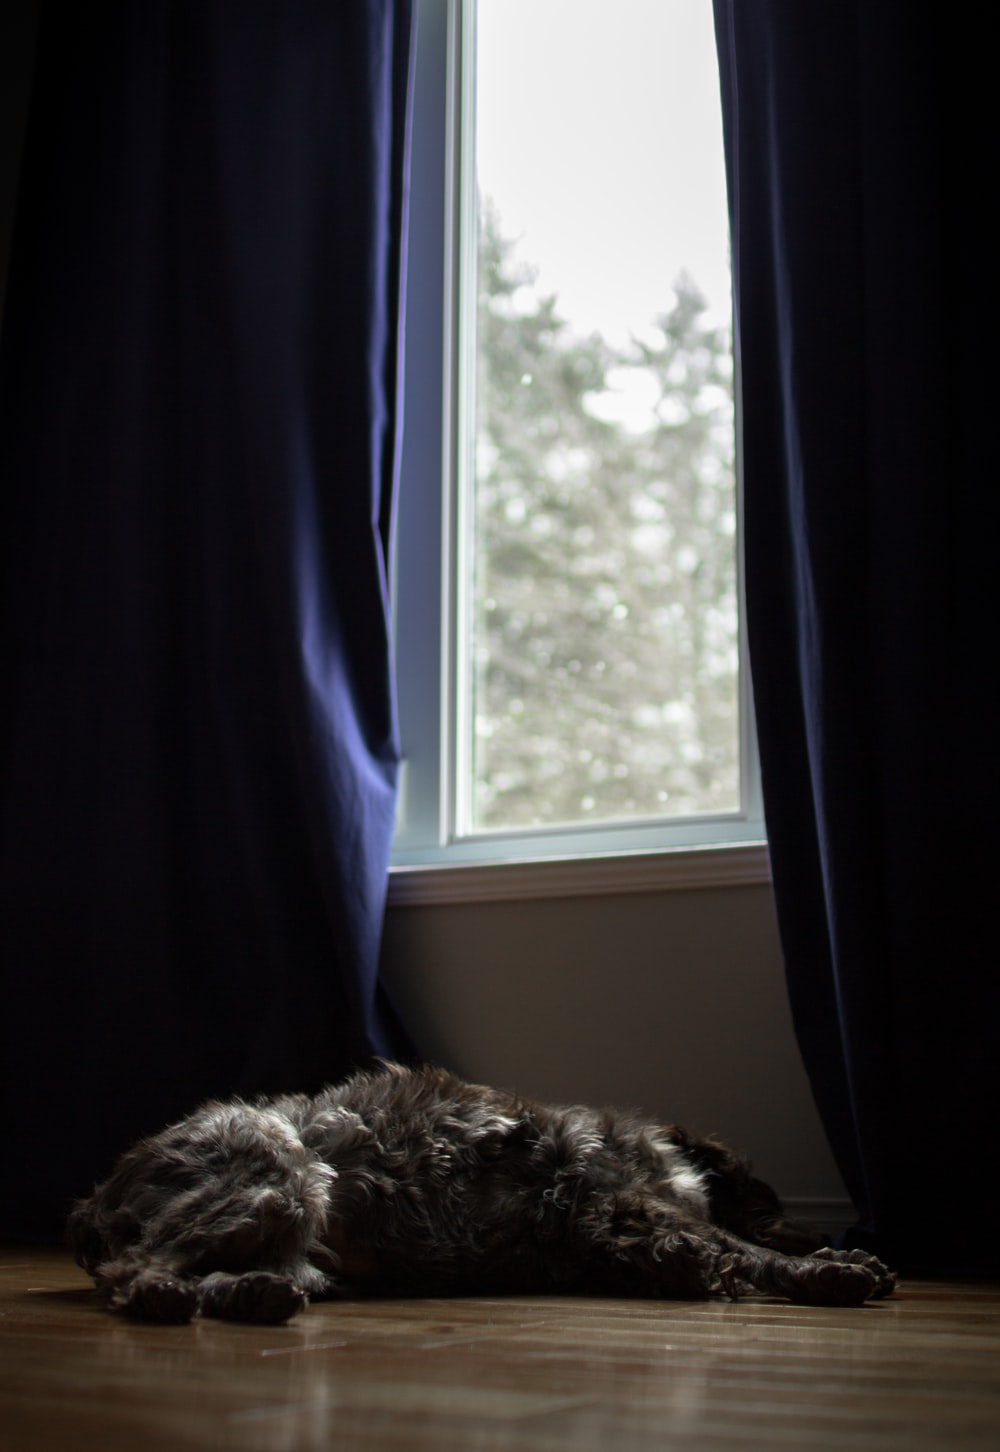 dog resting in front of window